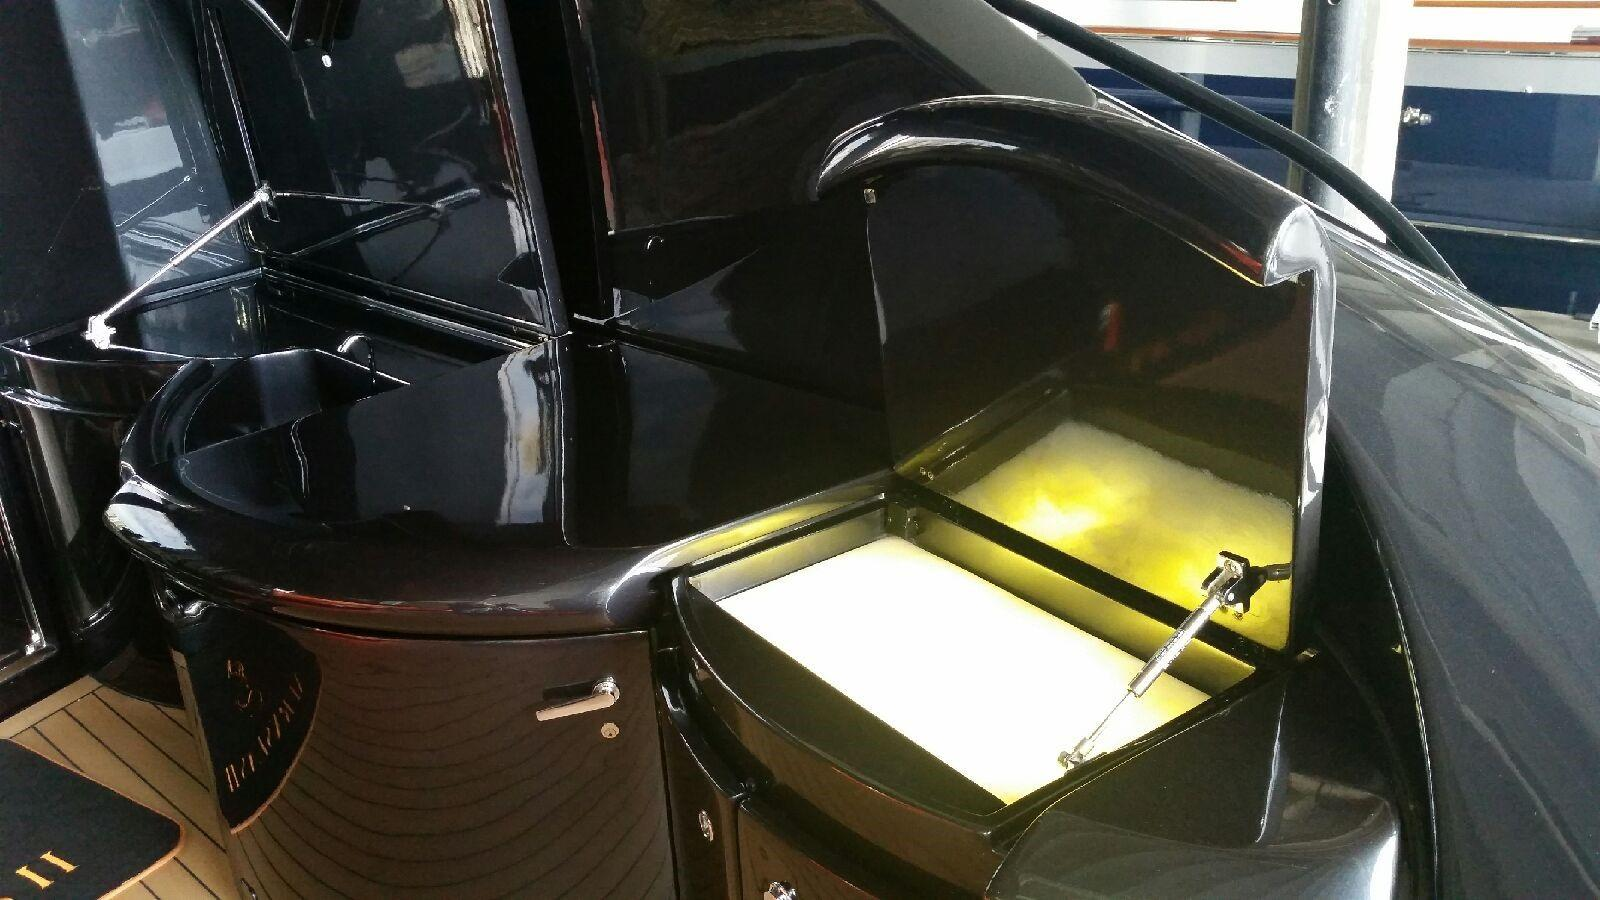 2002 Pershing 88 - Custom Baclit Onyx Tray